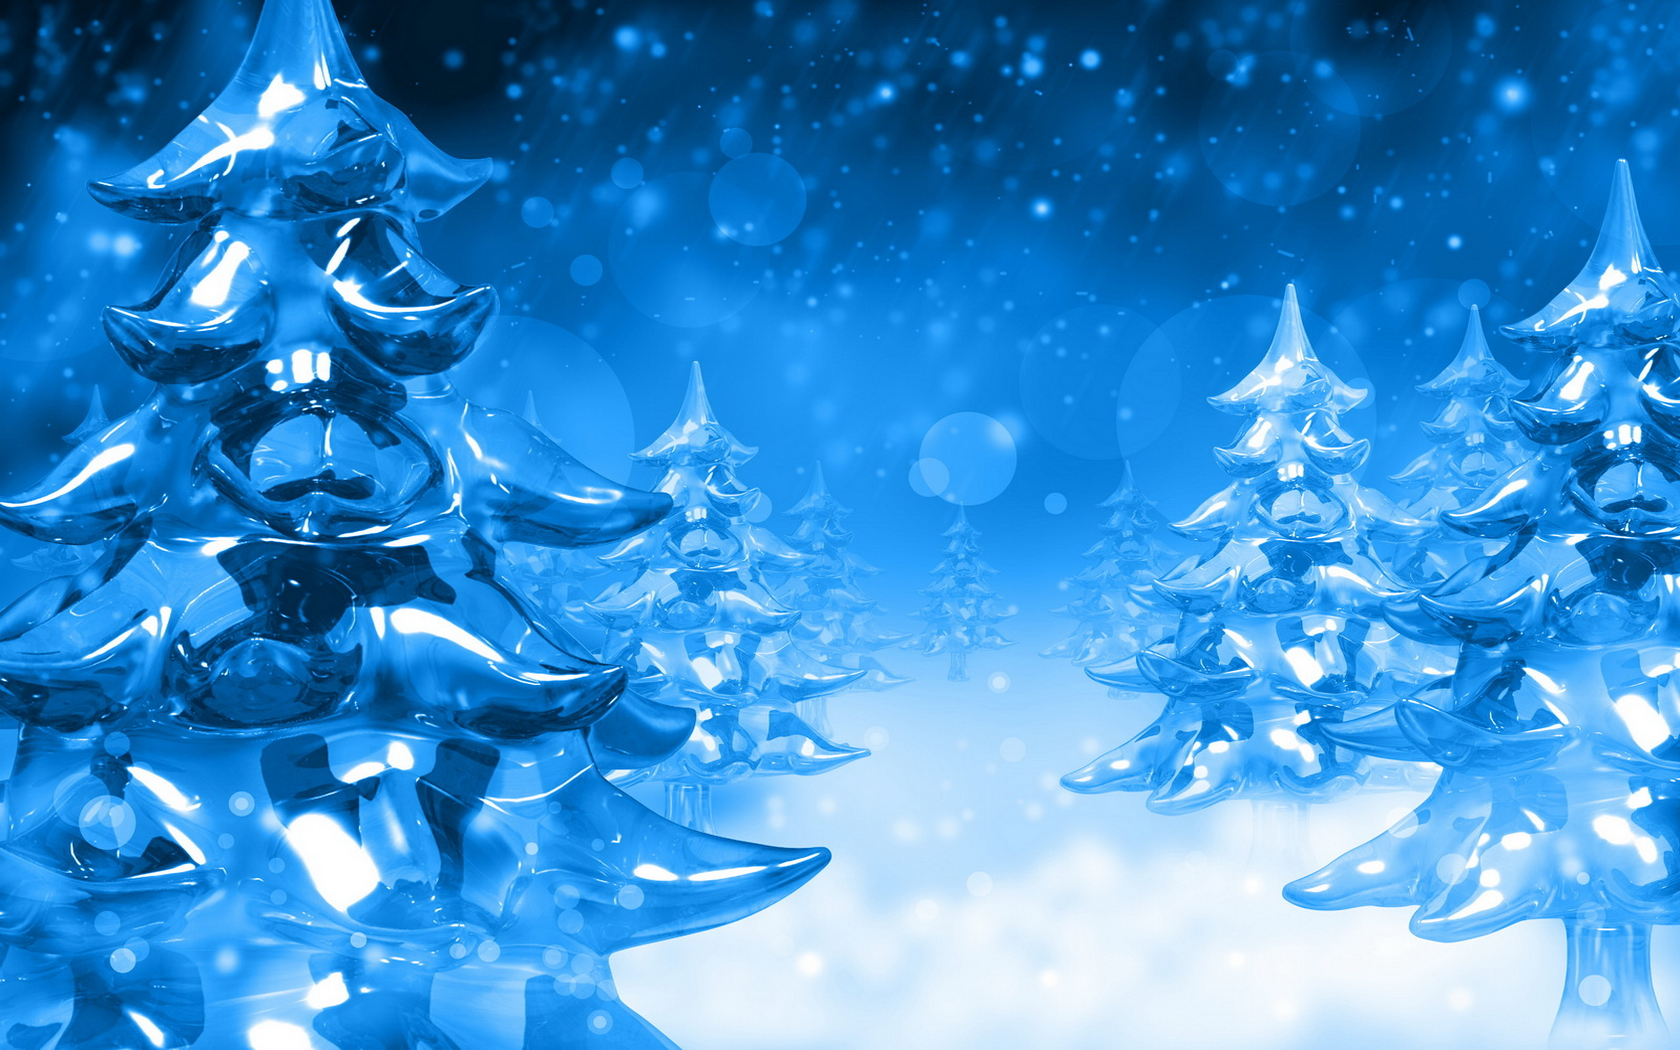 free christmas wallpaper and screensavers 2015   Grasscloth Wallpaper 1680x1050